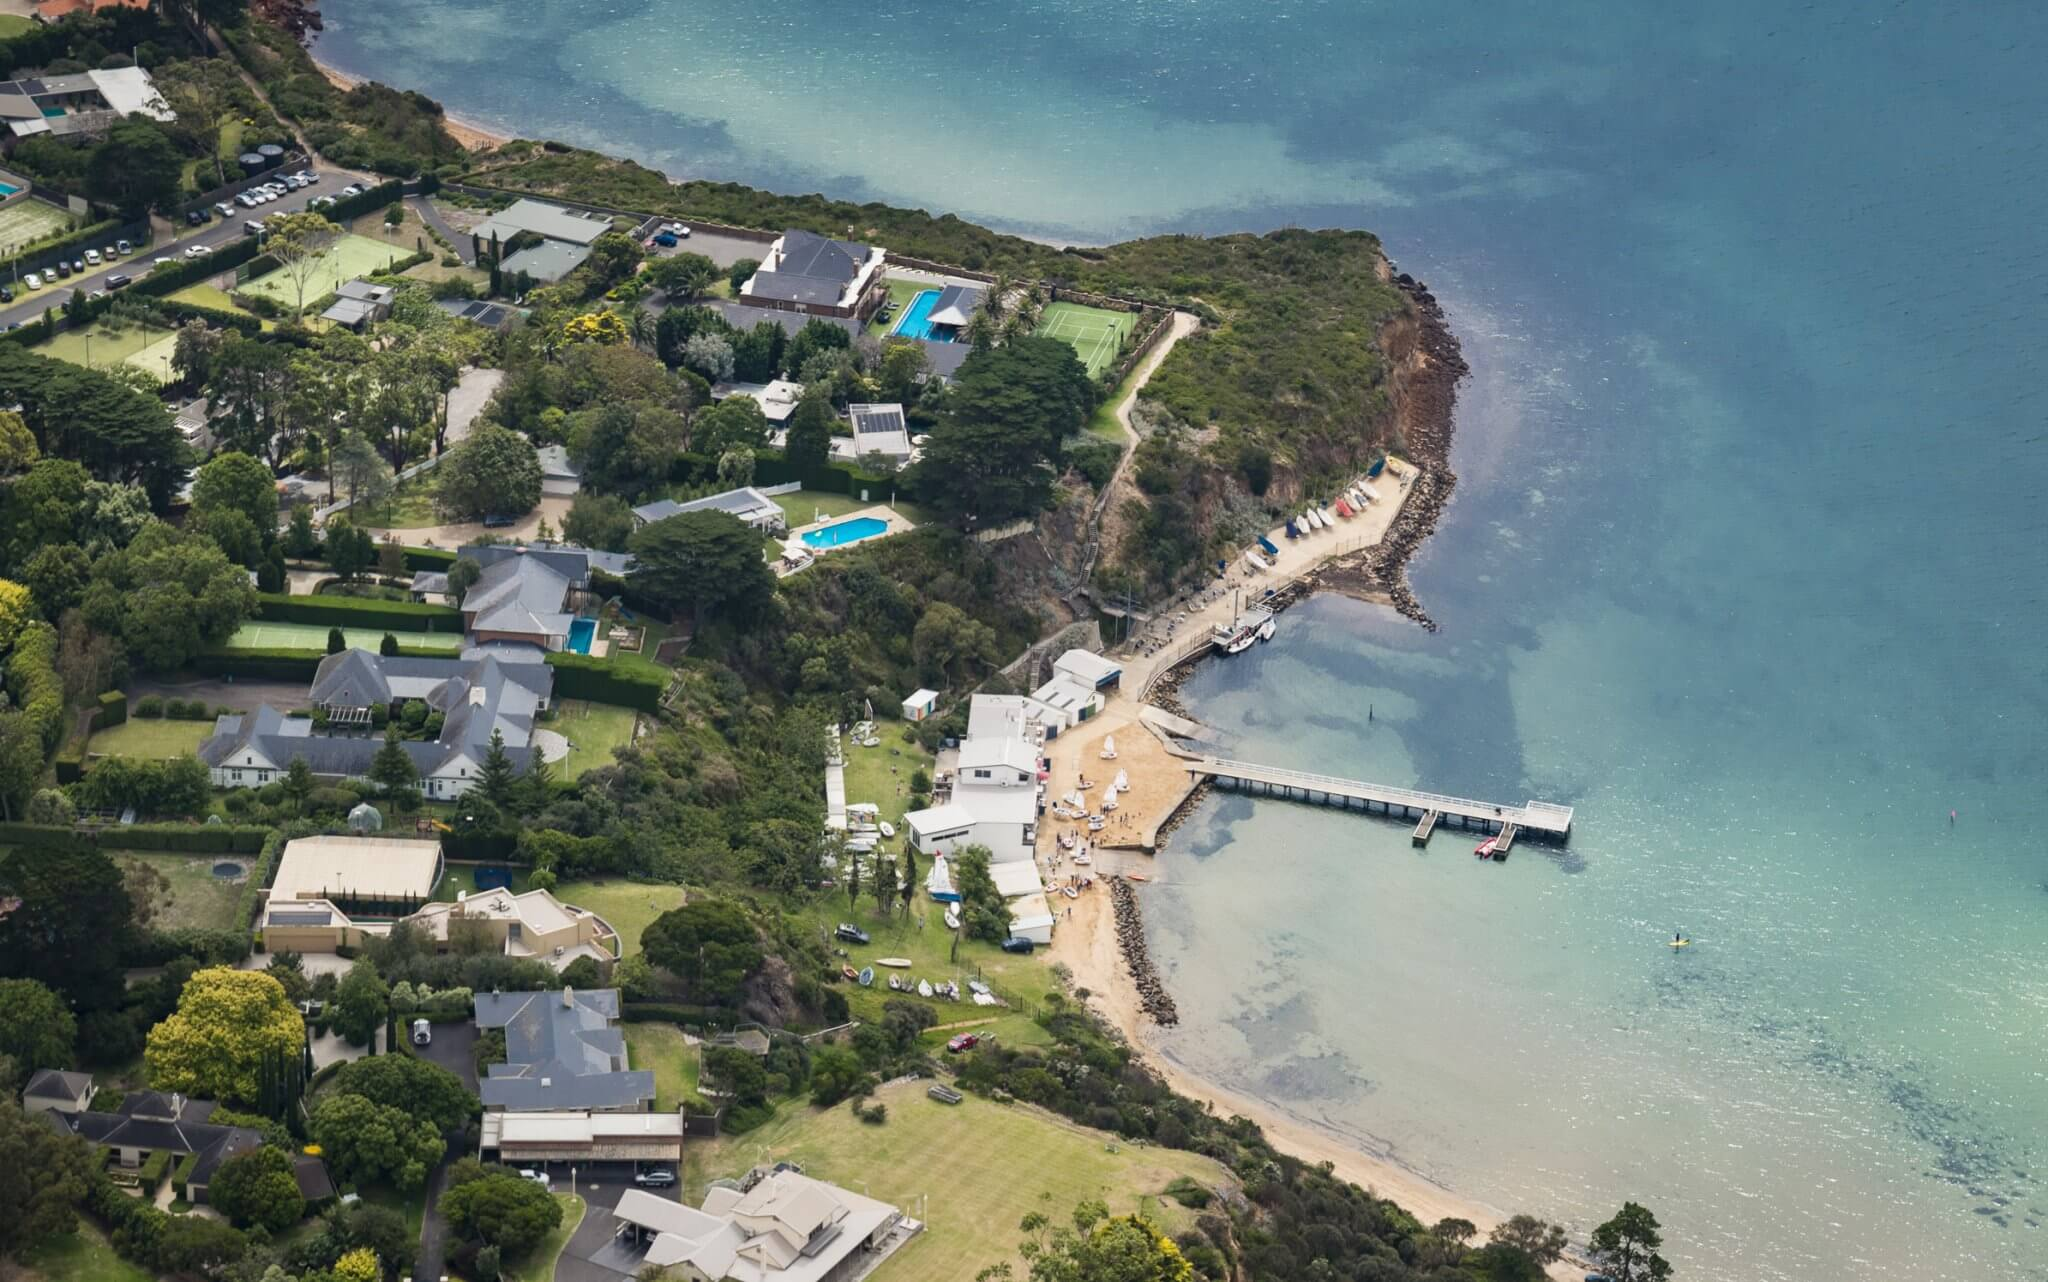 flying over the Mornington peninsula, the Pier in Mount Eliza